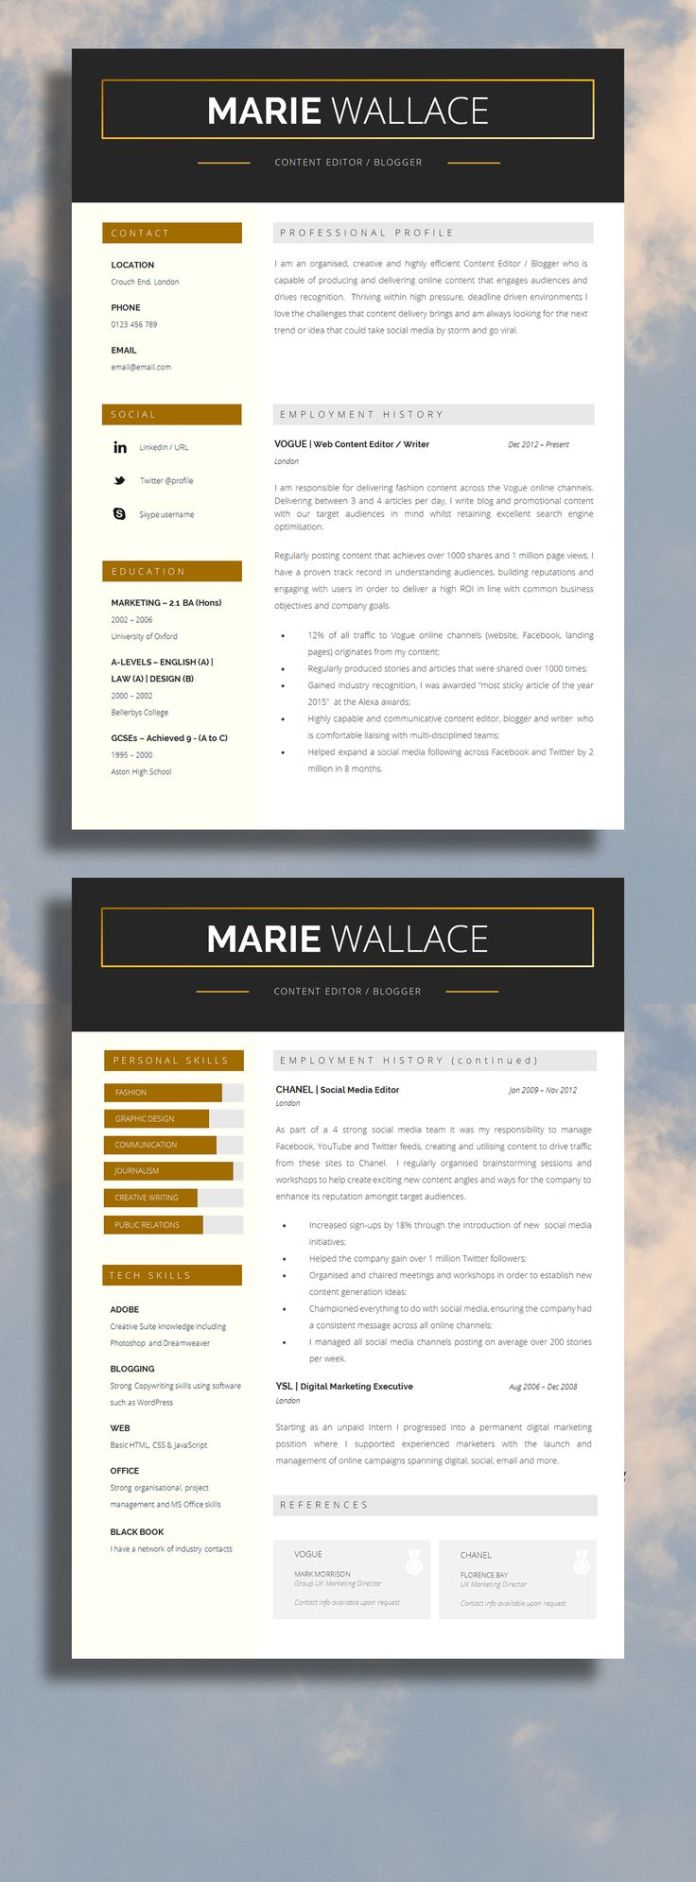 resume   two page professional resume template with